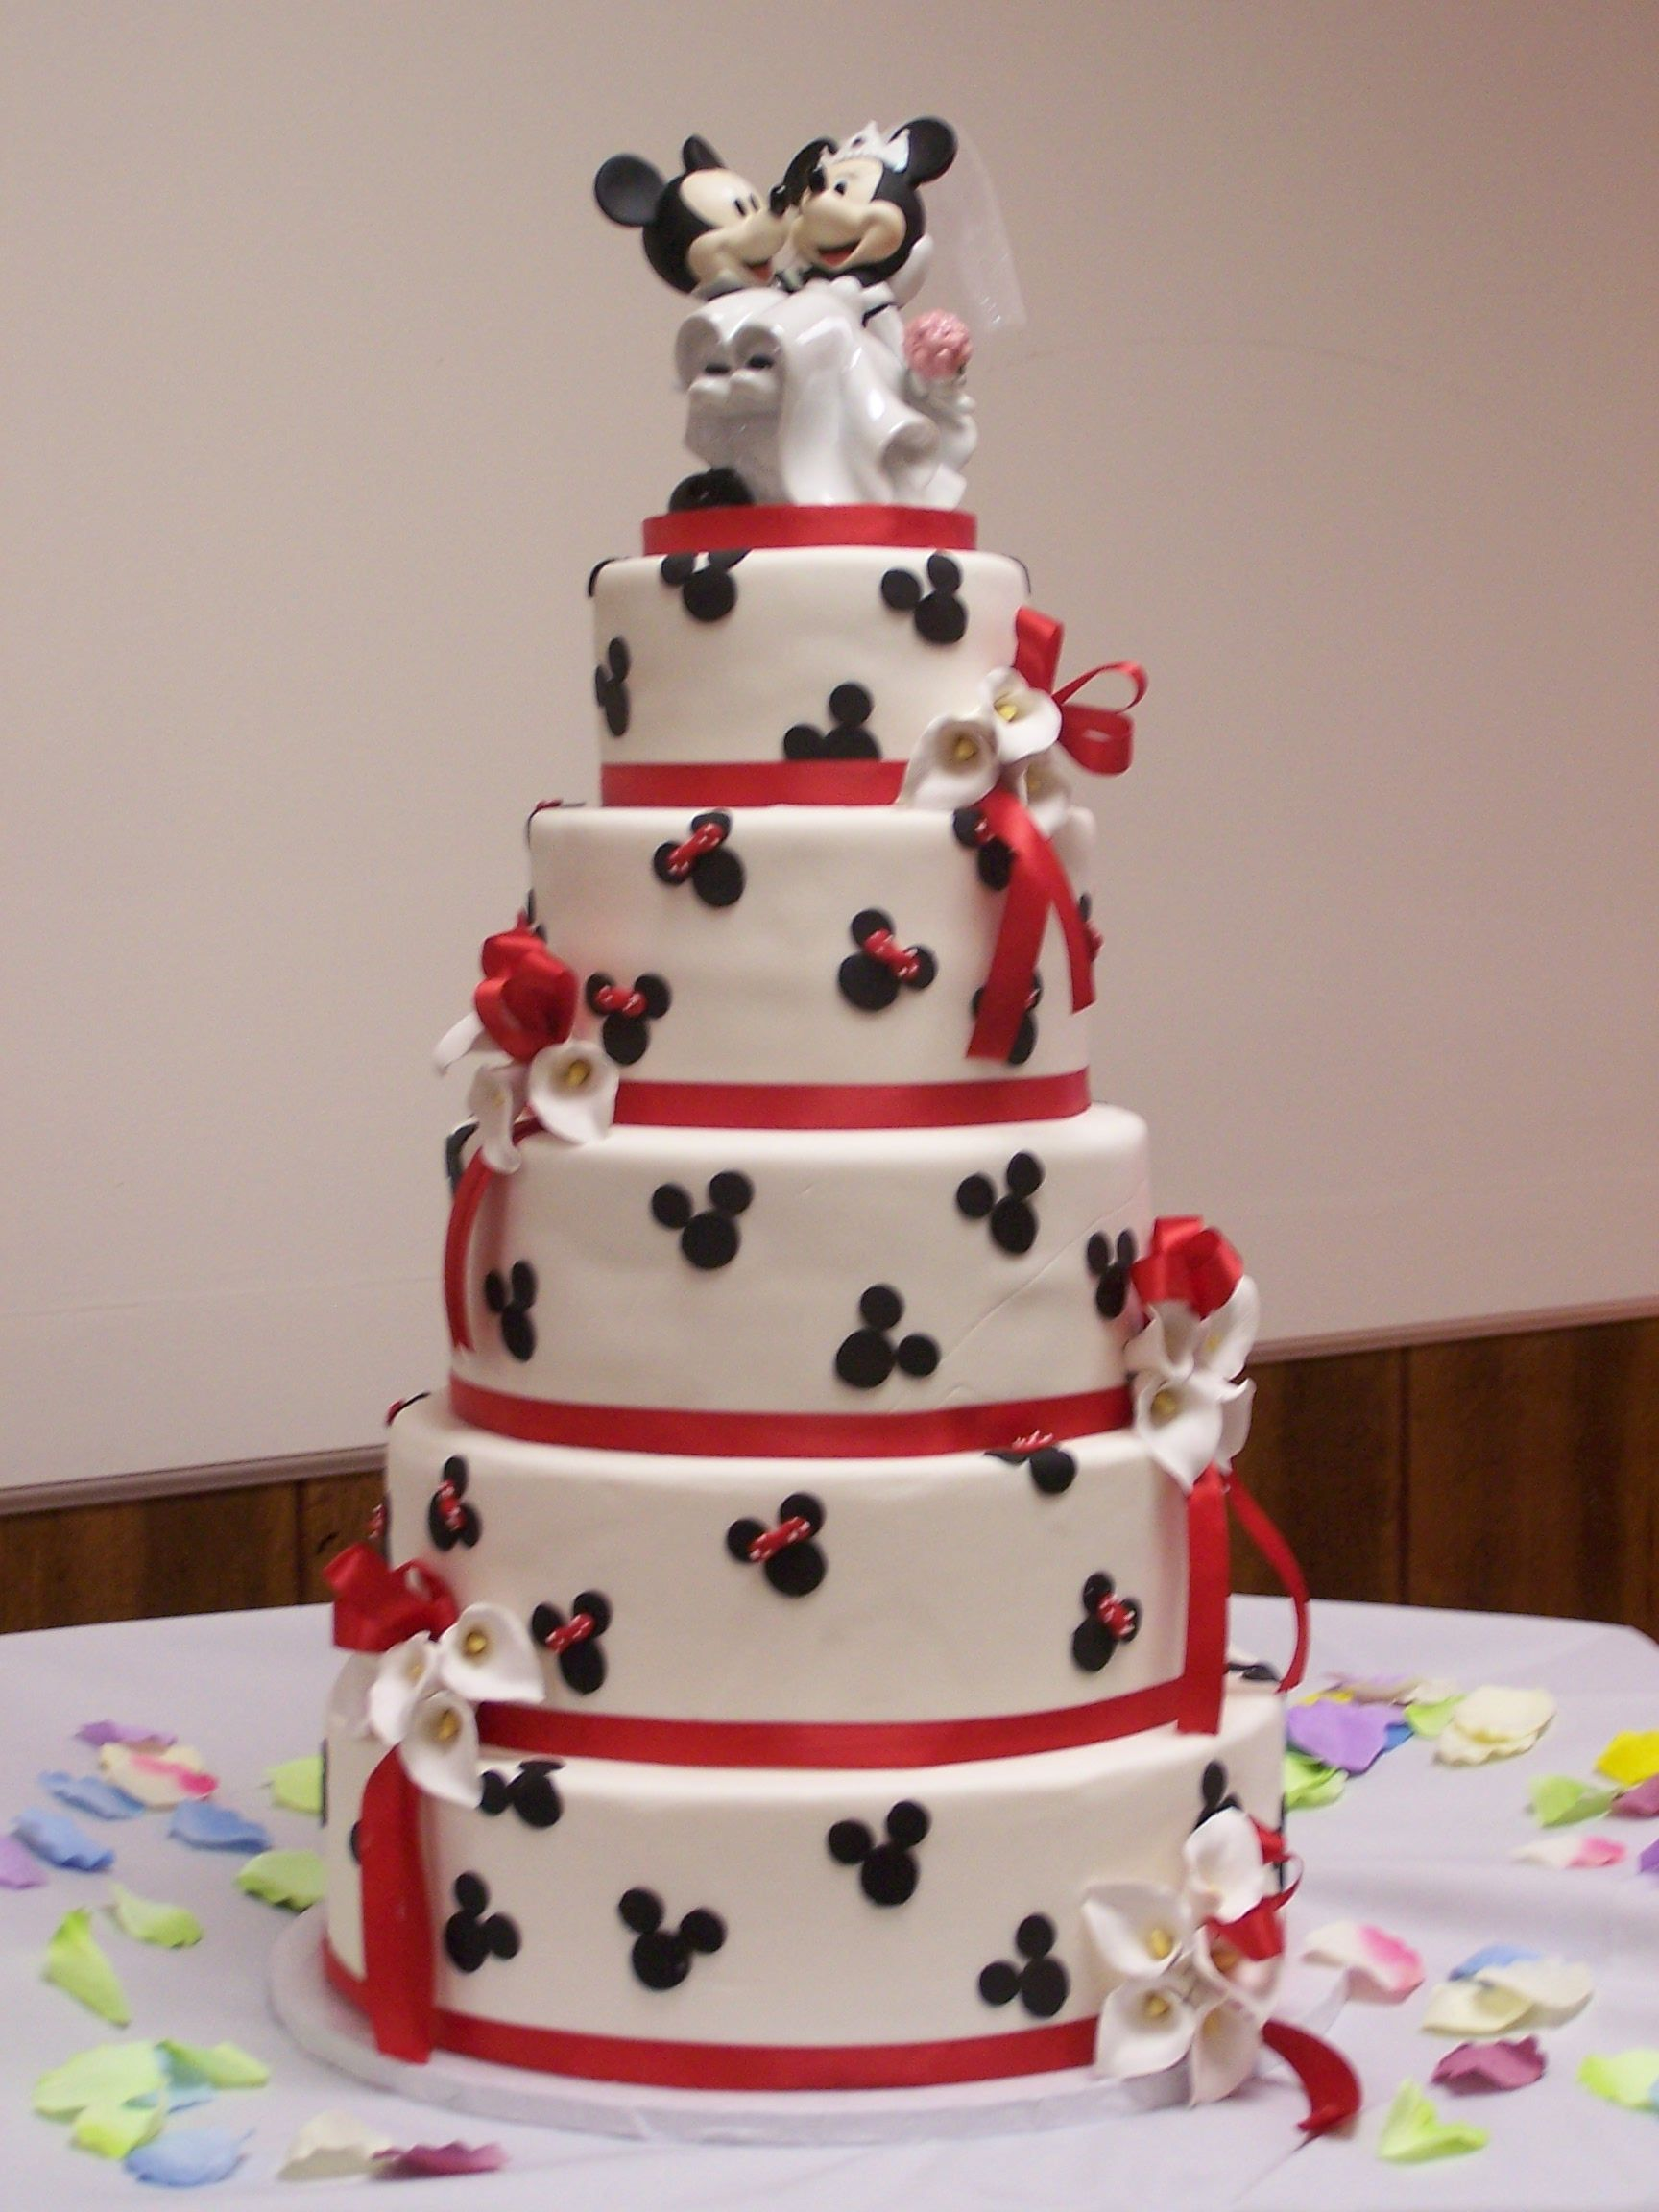 Mickey & Minnie Wedding - The Bride was given the topper and wanted a cake to match.  So this is what we came up with.